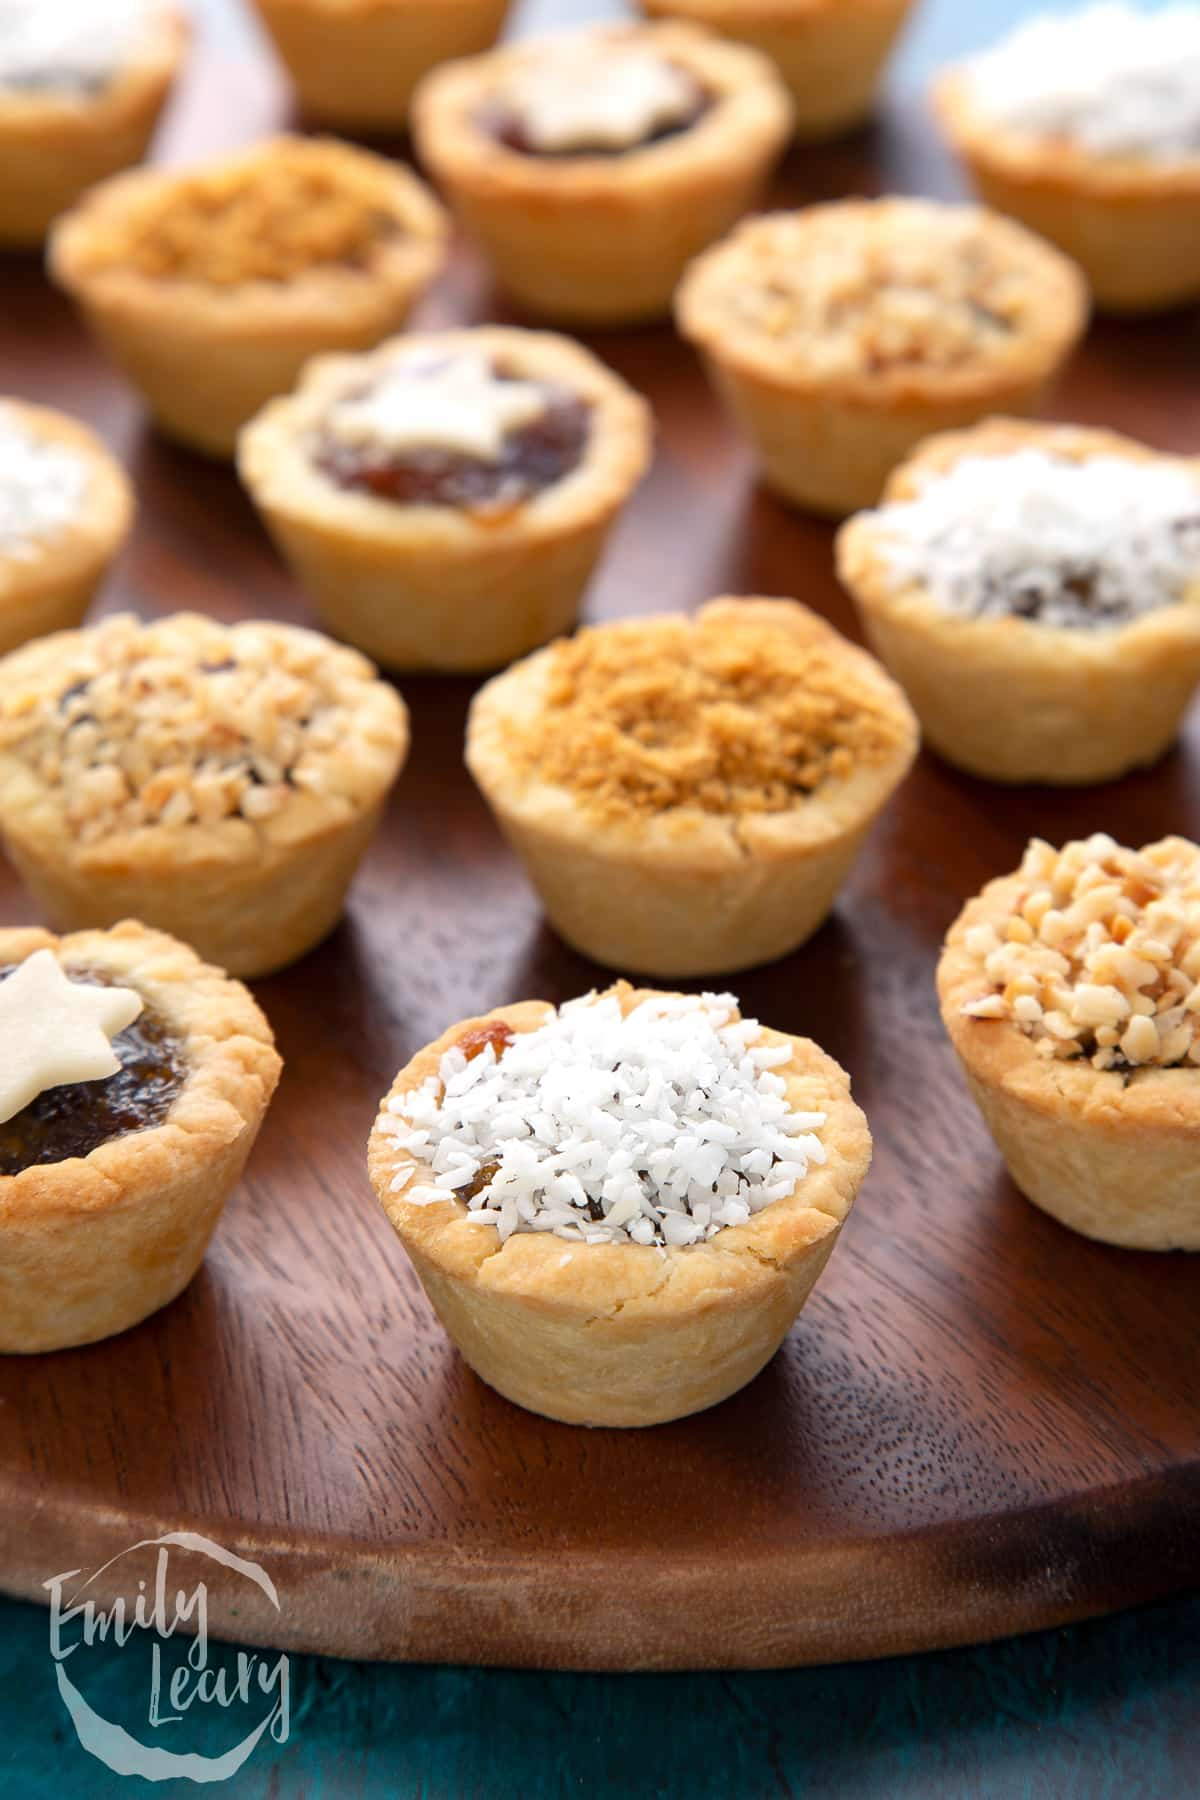 A desiccated coconut topped mini mince pie. More mini mince pies are also on the dark wooden board.